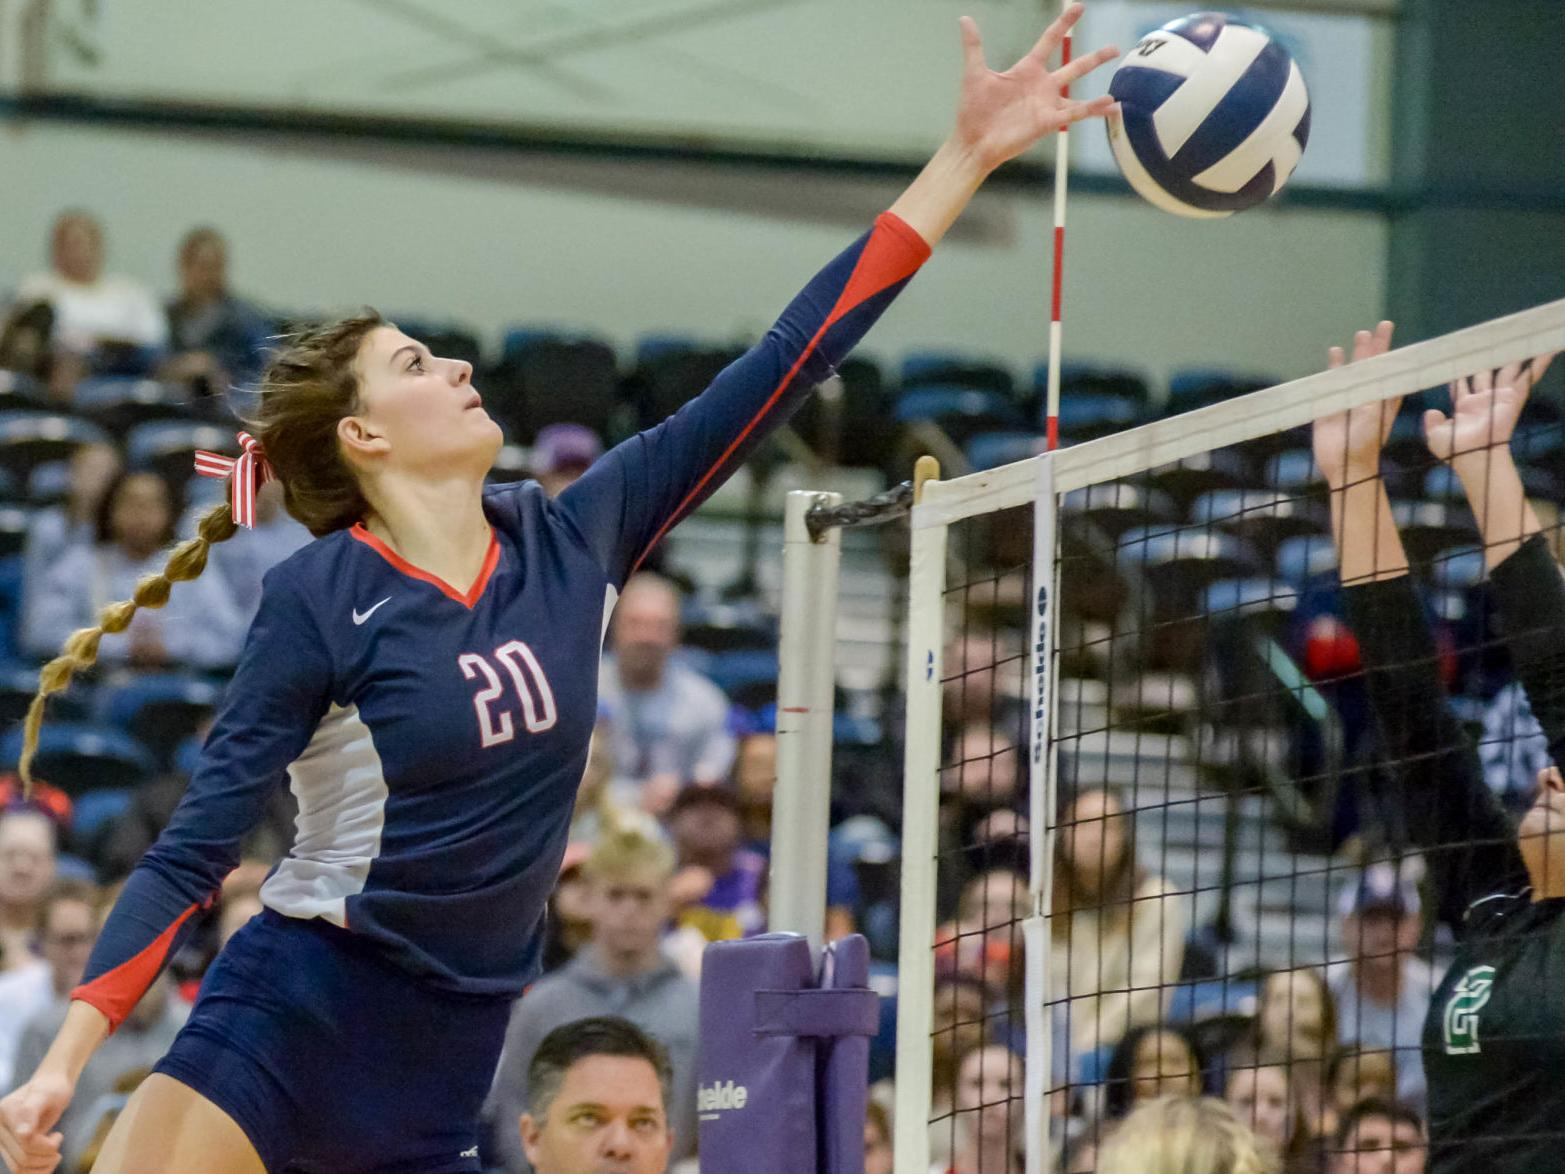 Winning Again Teurlings Mount Carmel Country Day Extend Title Streaks At Lhsaa Volleyball Tourney High School Sports Theadvocate Com